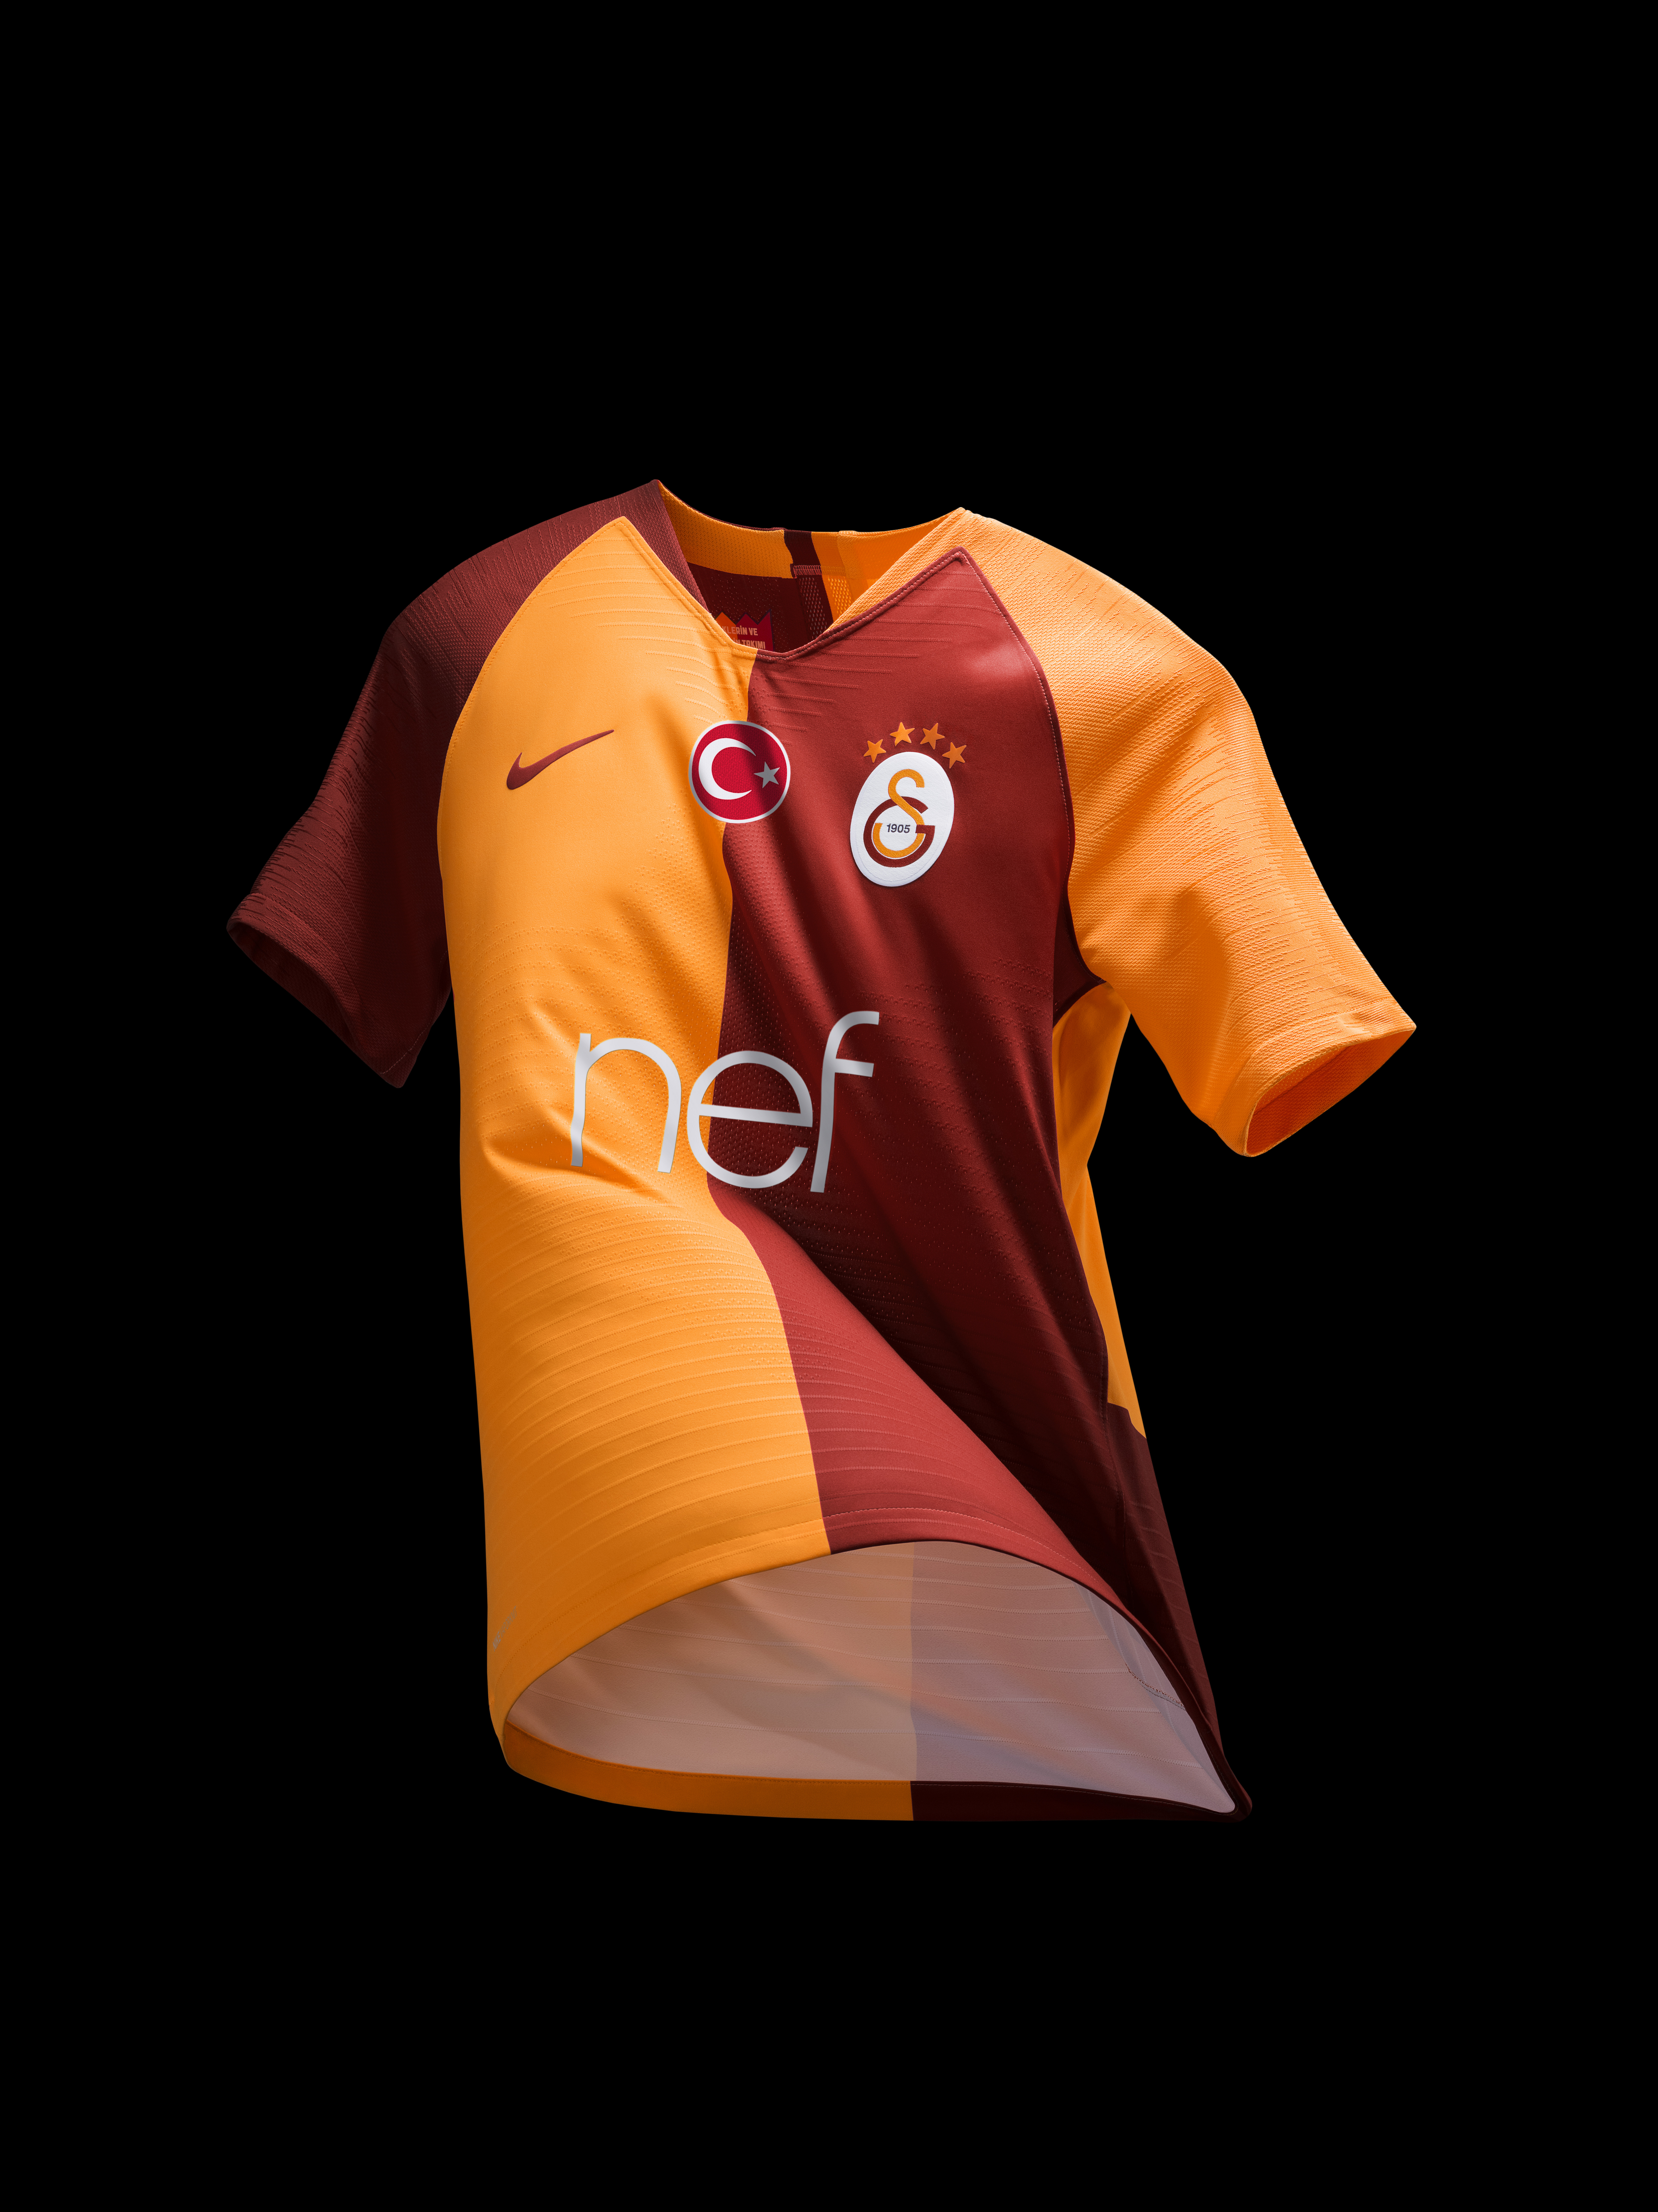 Galatasaray Home Kit 2018-19 EMBED ONLY